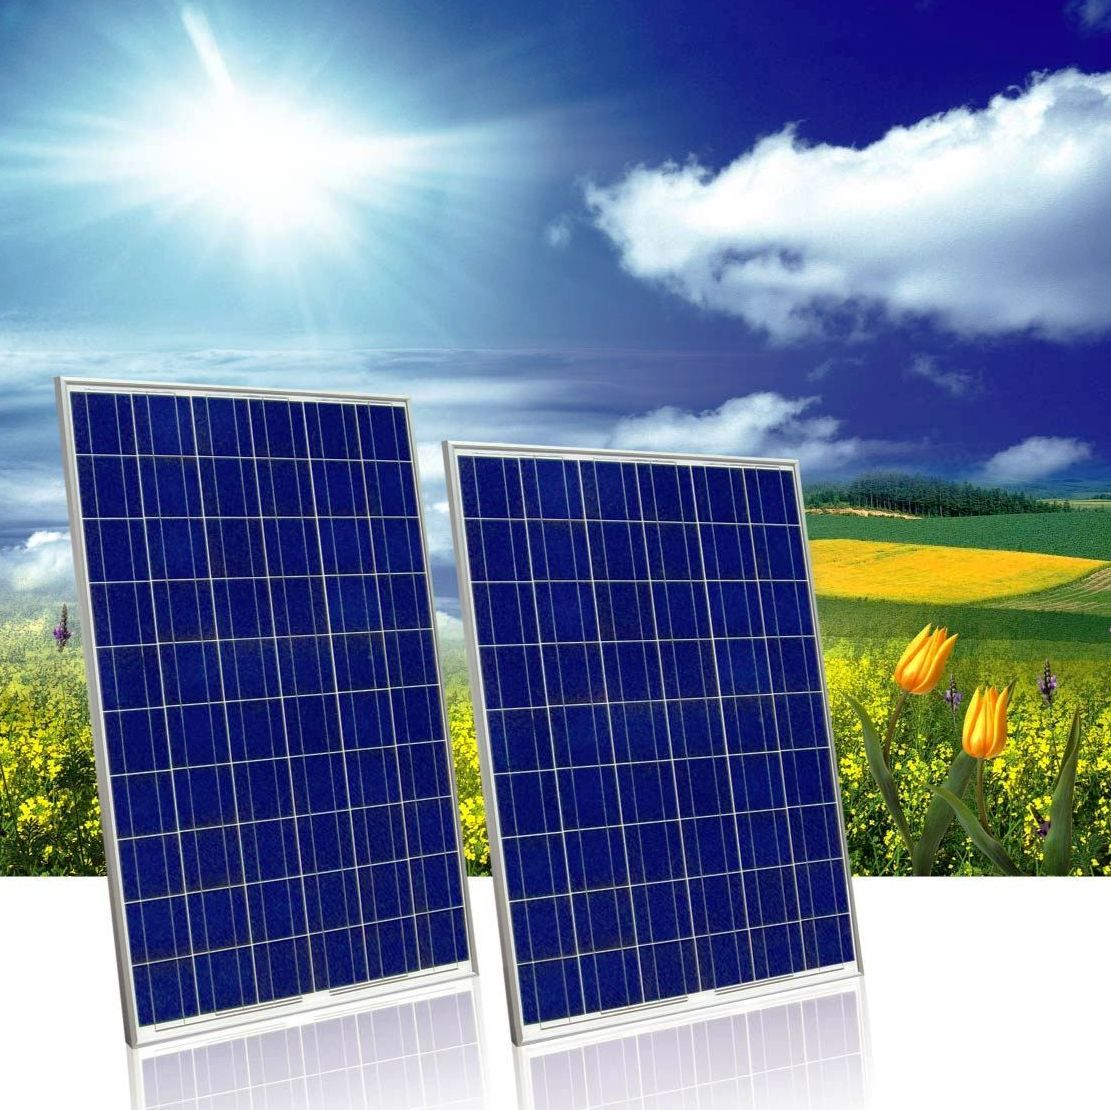 Install Solar Panel Systems To Your House Or Office By Hiring Professional Solarpanel Installer In Sydney Australia Solar Solar Panels Solar Panels For Home